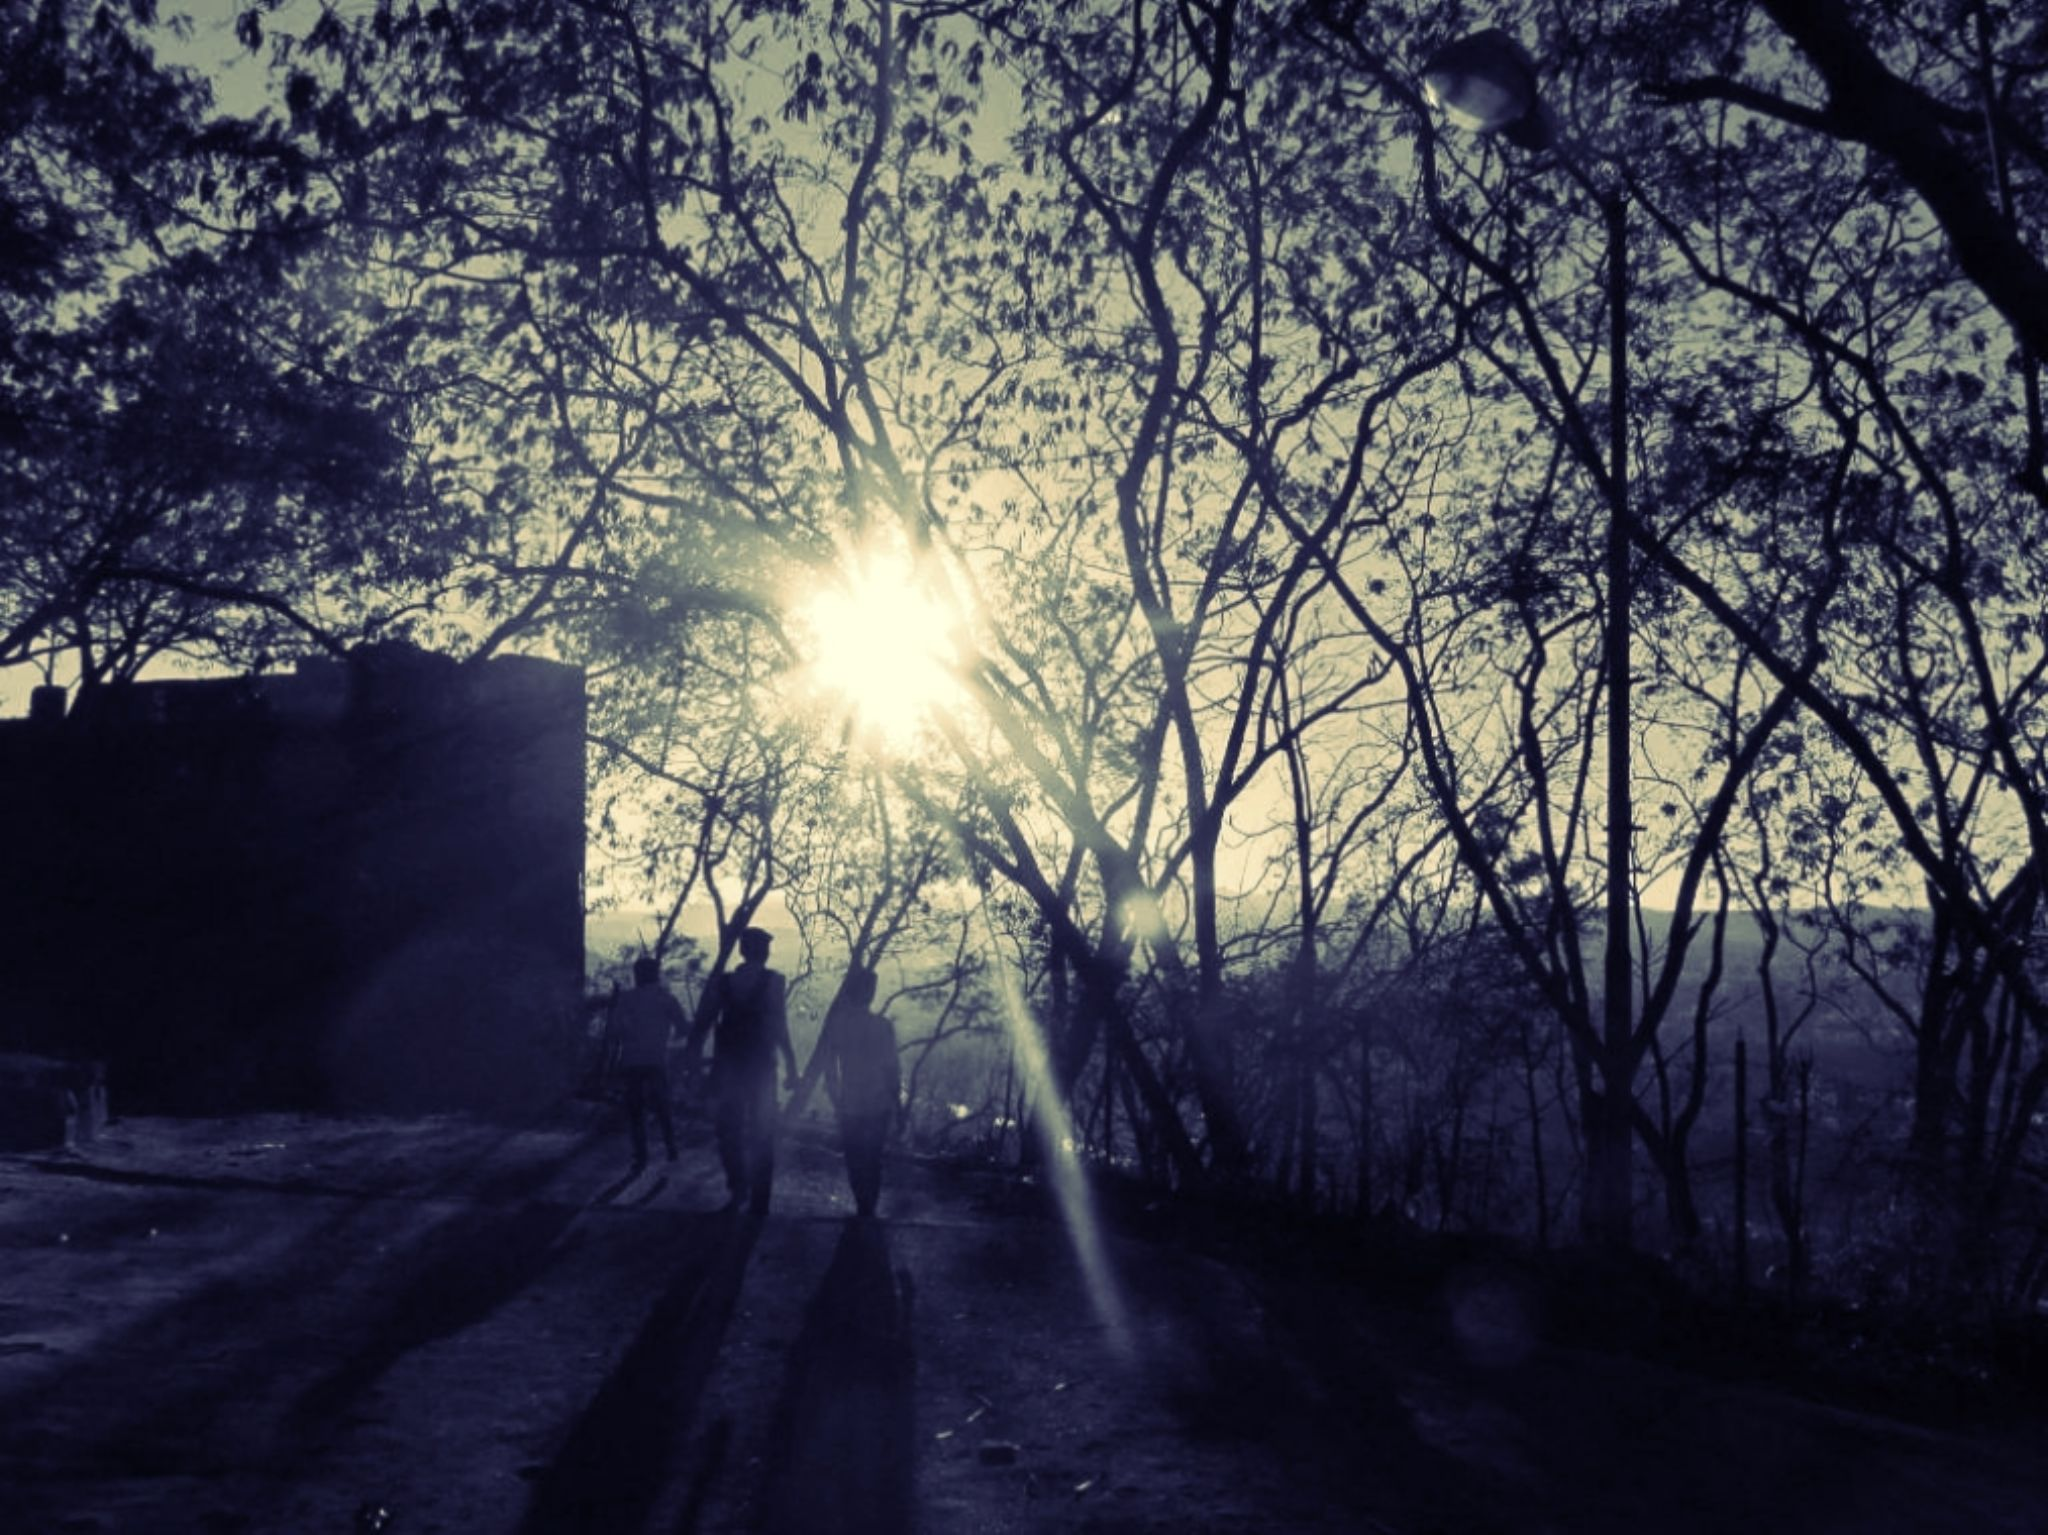 A Walk With My Friends... by Vinayak Patukale